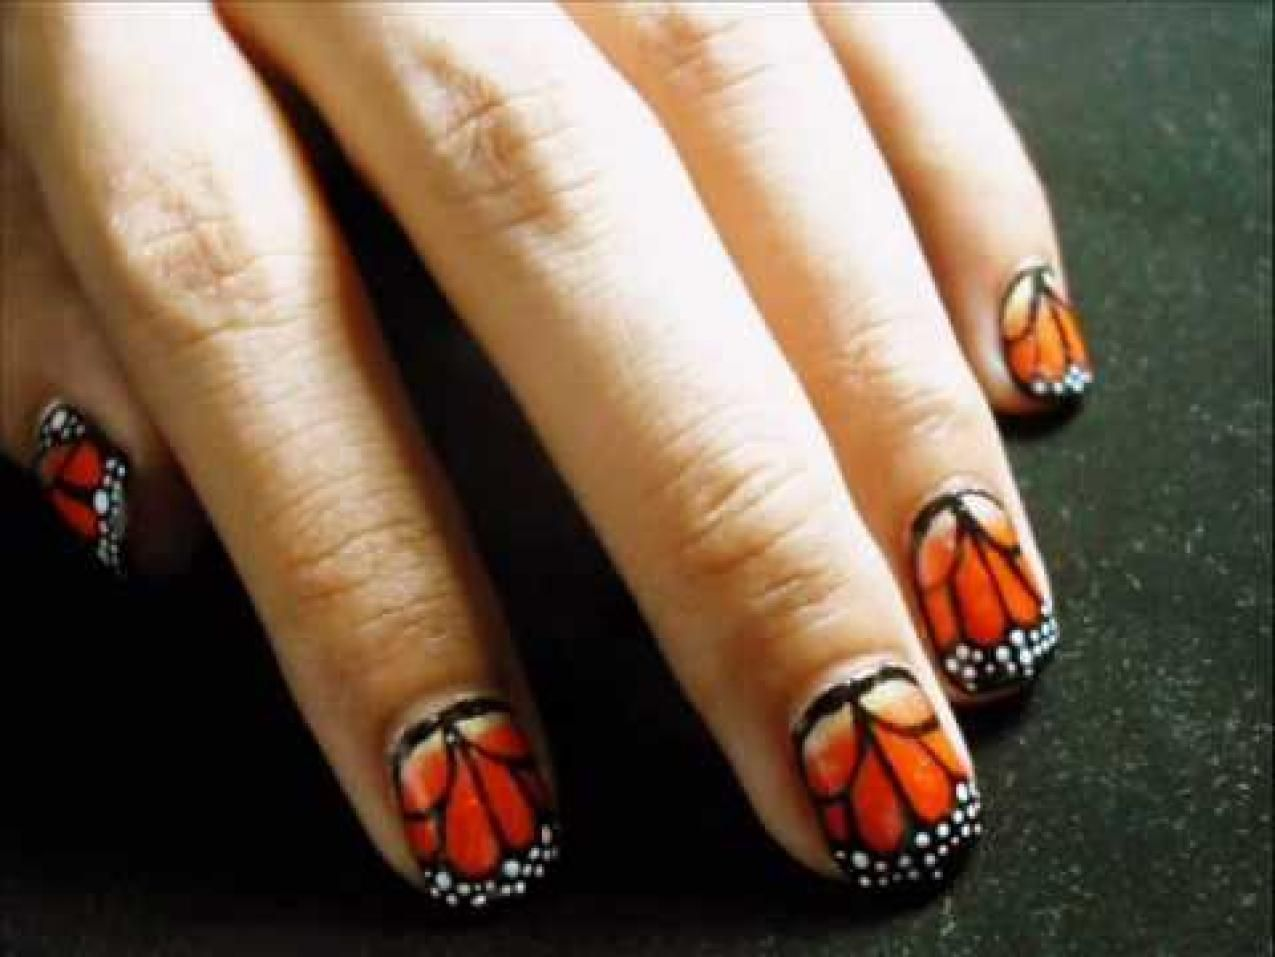 luxury nails | Nail Design Ideas 2015 | nails salon | Pinterest ...